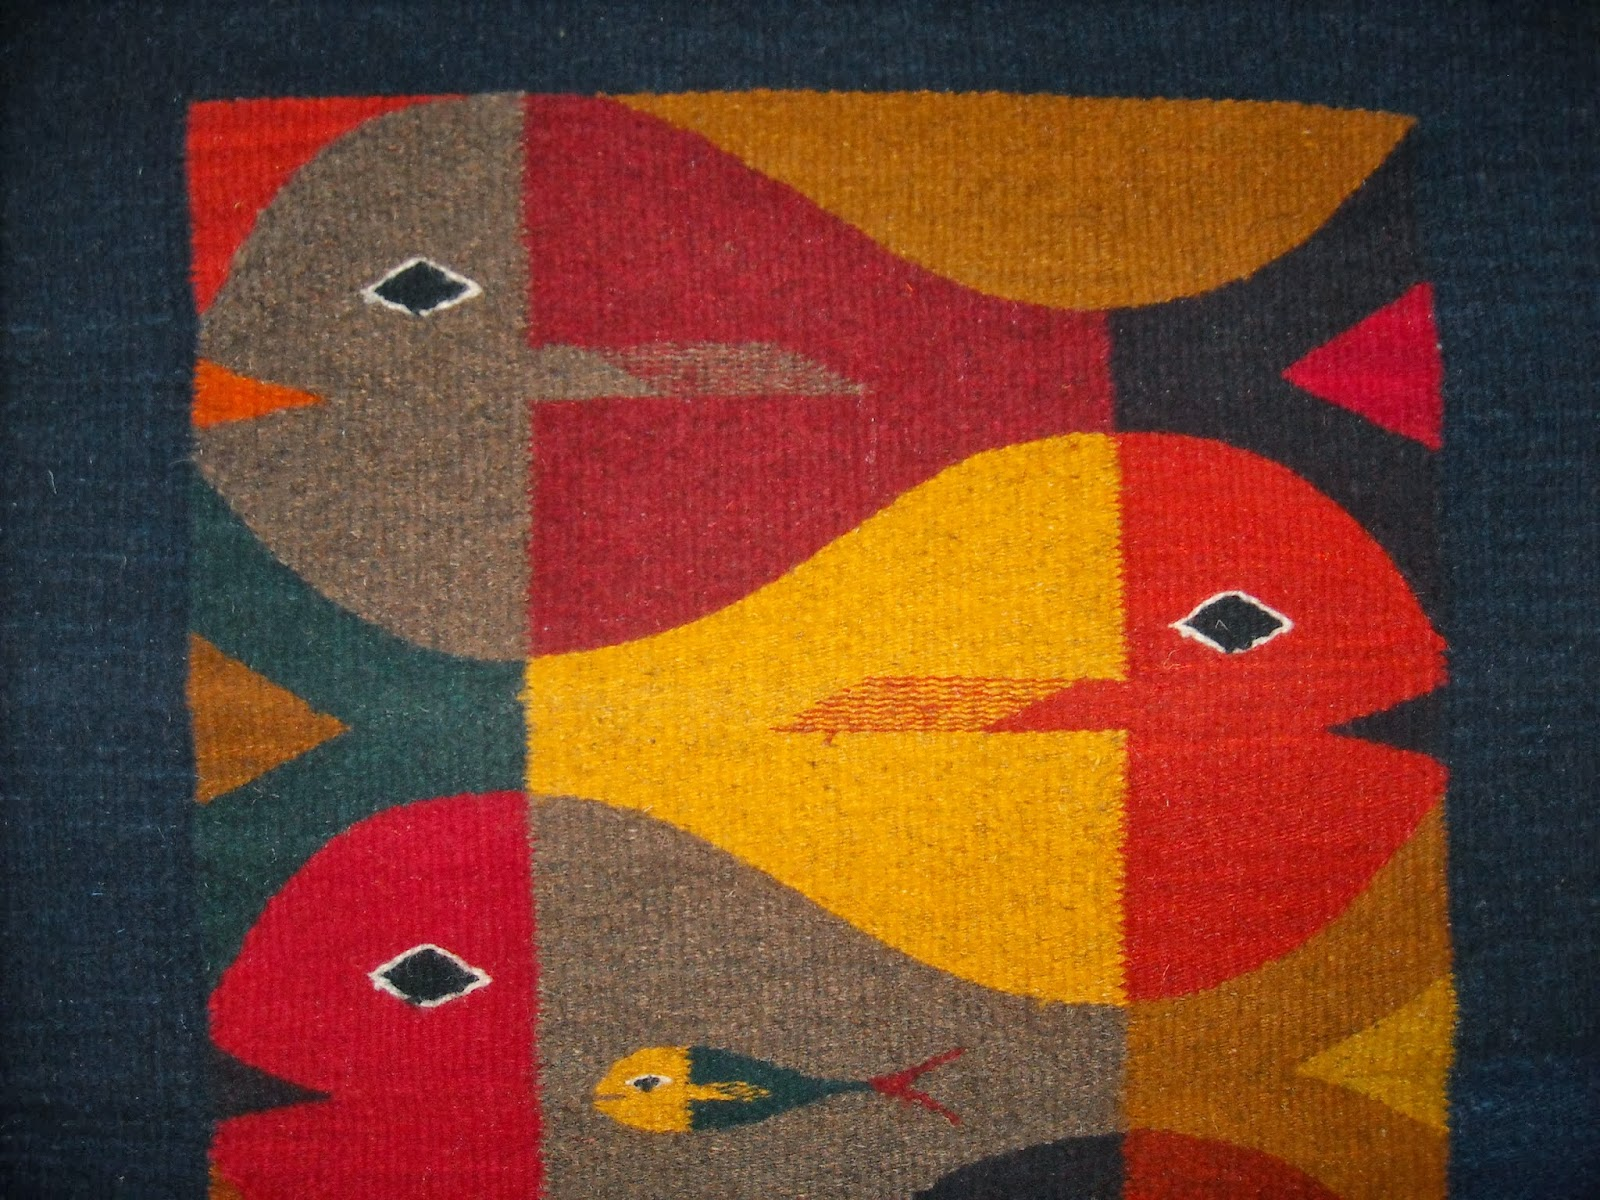 Call Us At (406) 728 9423 Or E Mail Lea@amirarugs.com If You Have Any  Questions About These Rugs!